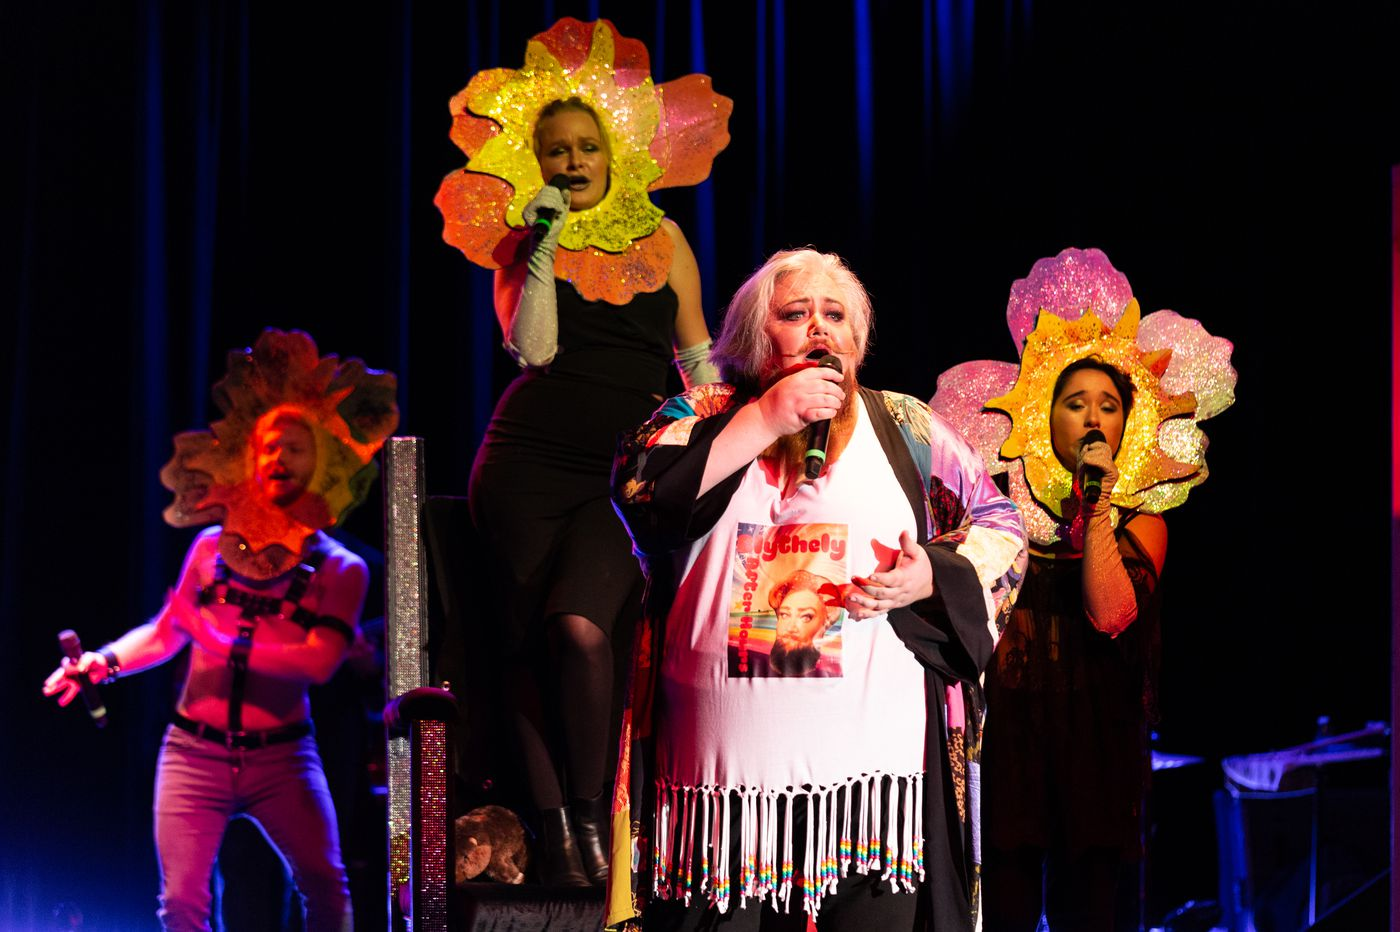 Festival O18 in drag: Mozart, the Carpenters, sequins, and killer heels